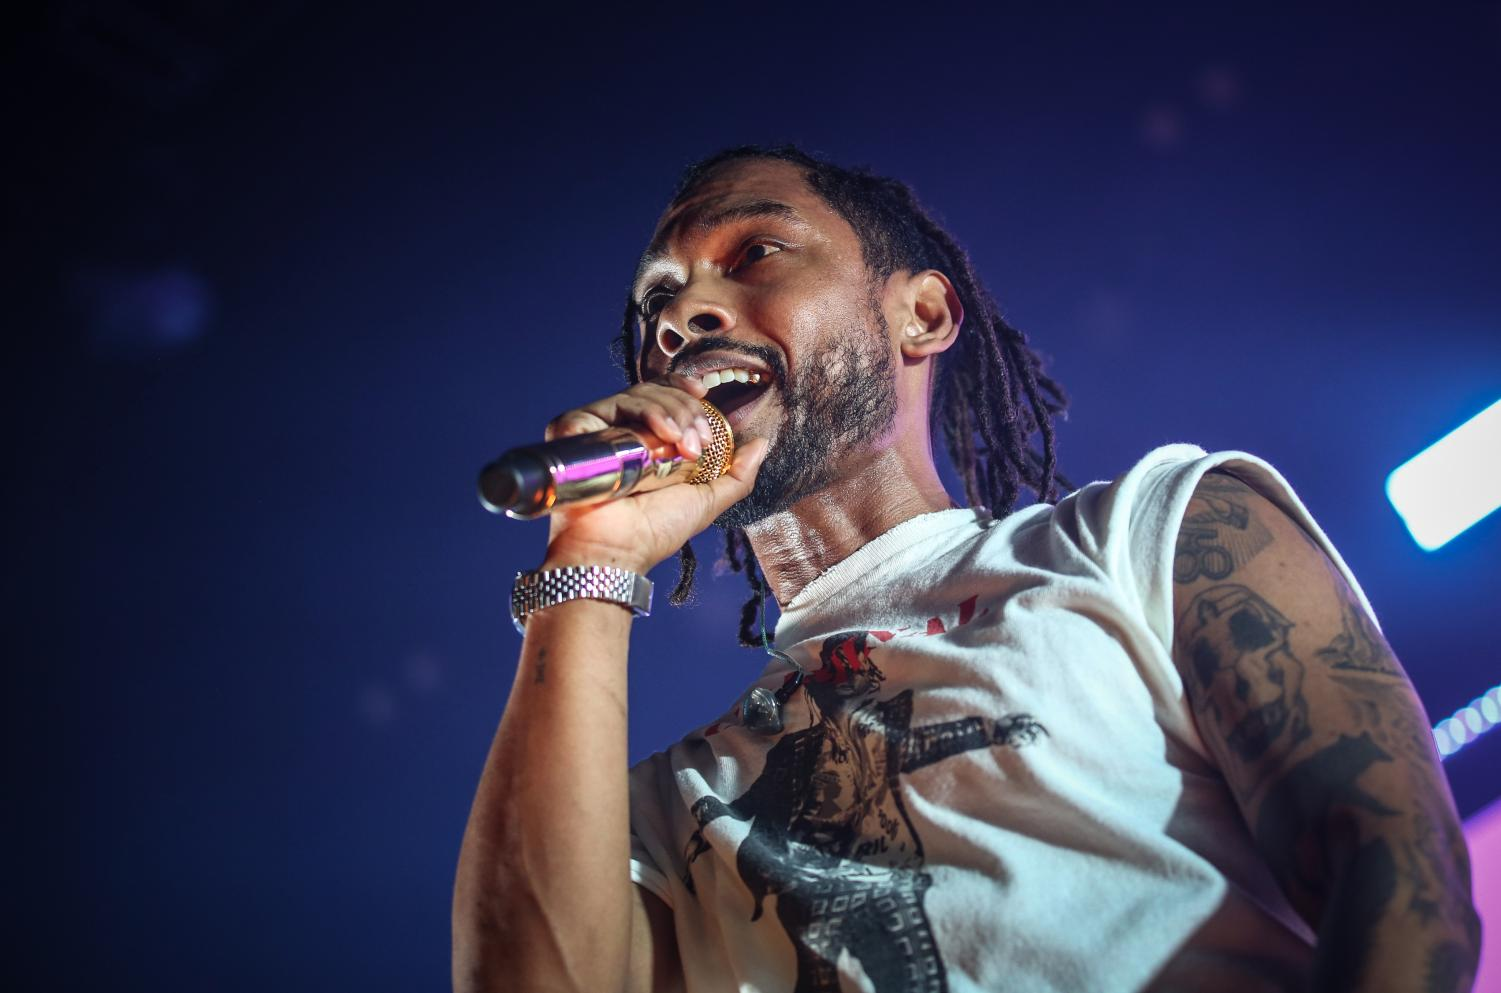 Miguel singing at the War and Leisure Tour St. Paul Palace Theatre on Mar. 2, 2018. The singer/songwriter will be headlining this year's Sol Blume festival in Sacramento.